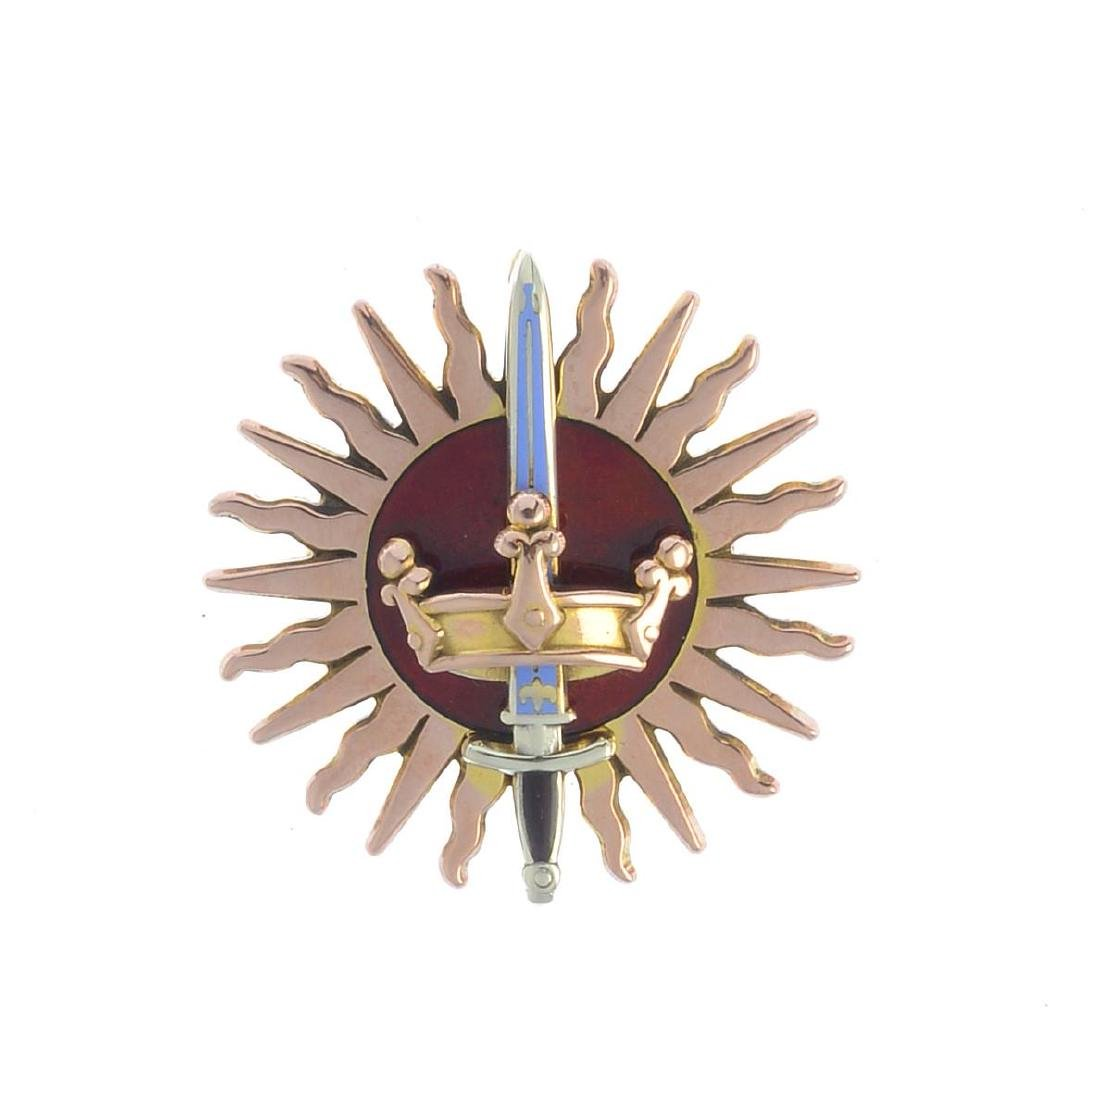 A 9ct gold diamond and enamel brooch. Designed as a